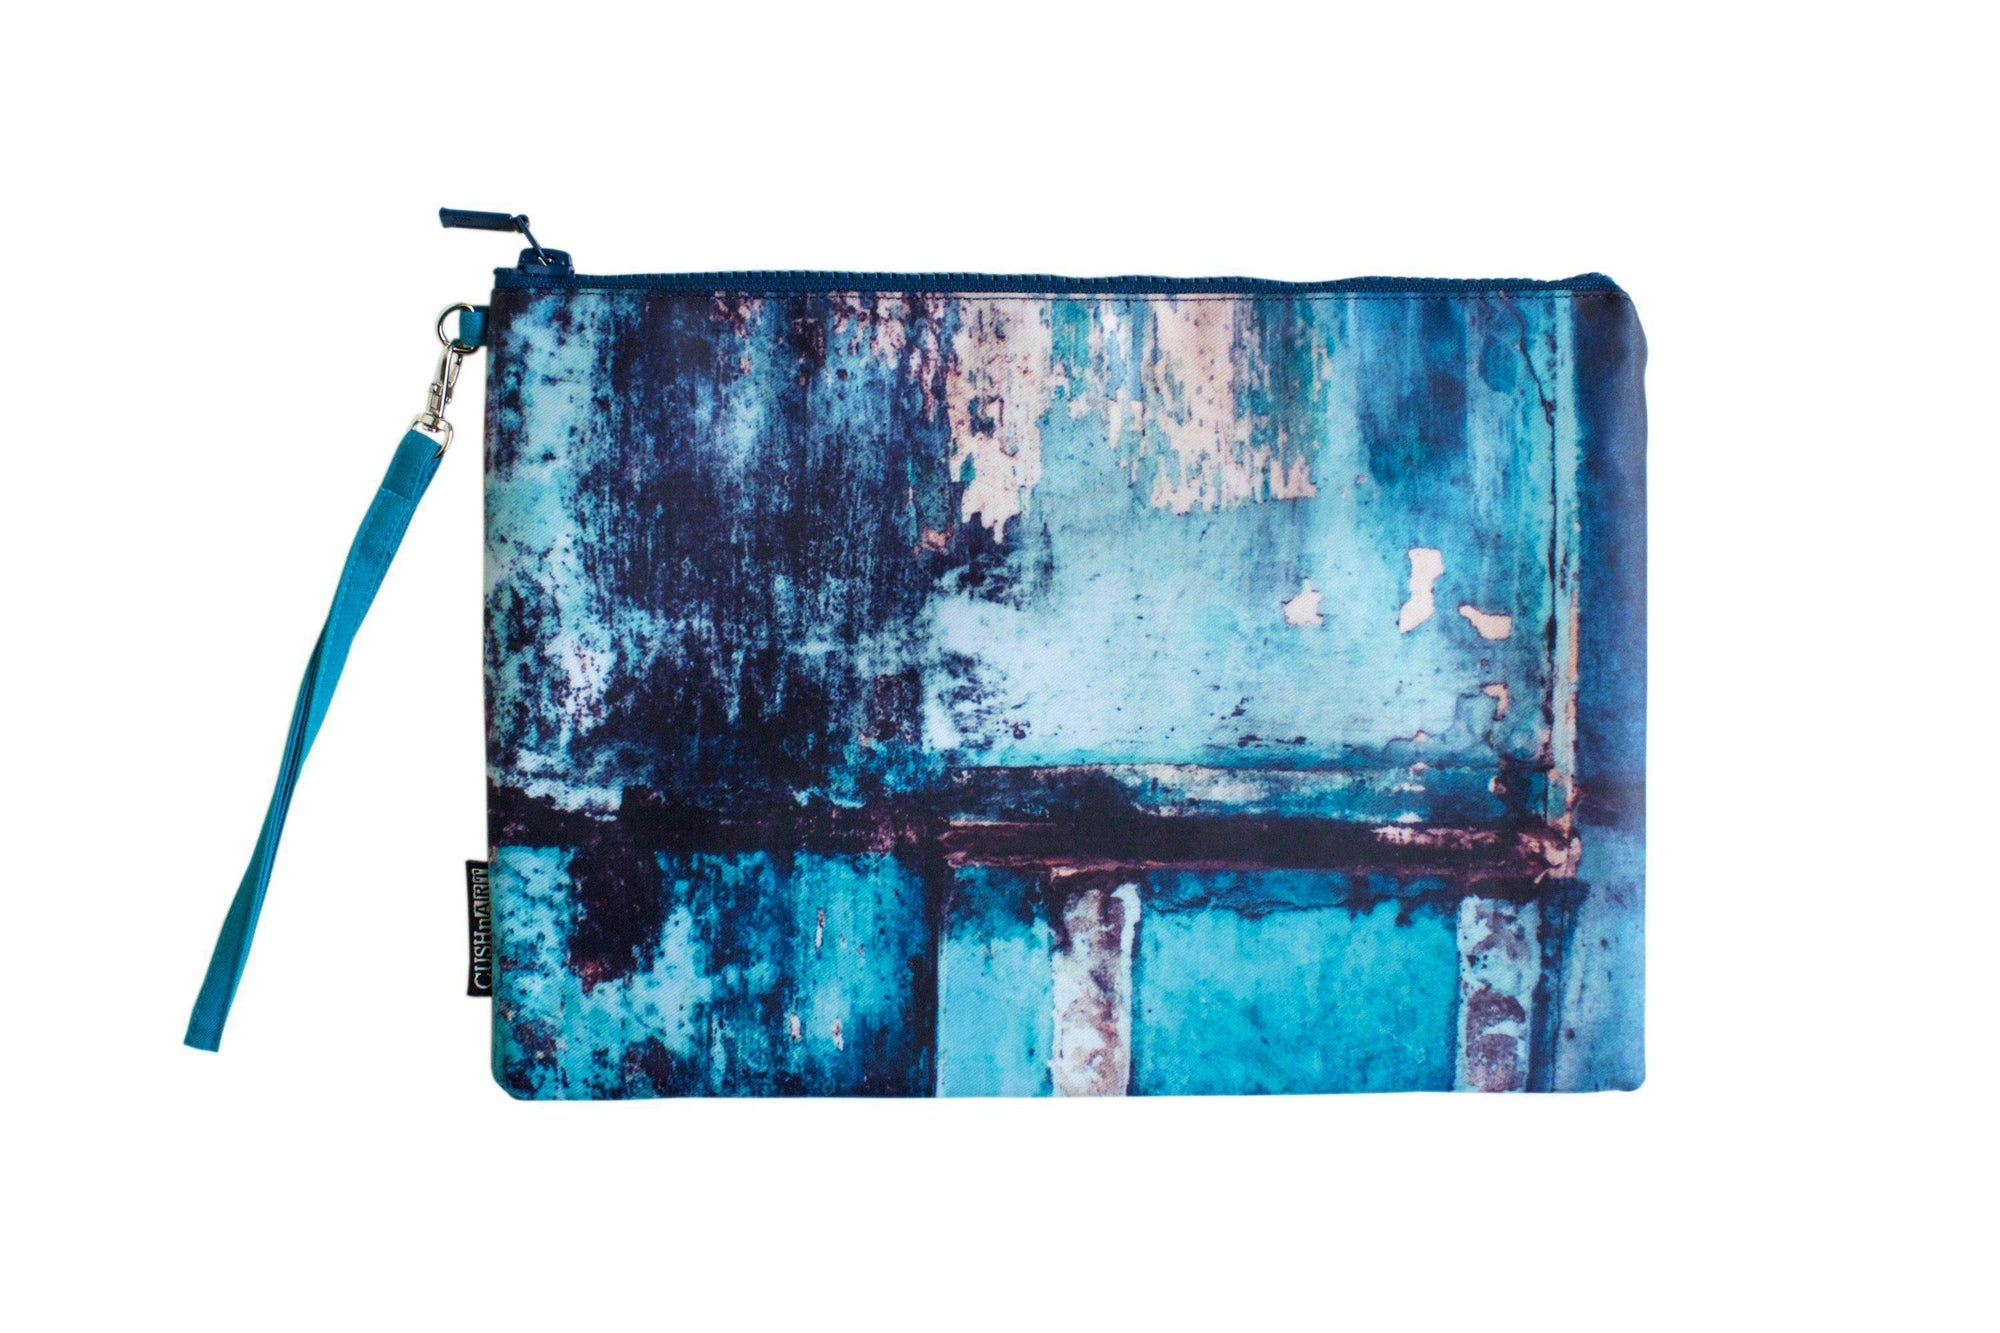 Teal Wall Water Resistant Clutch